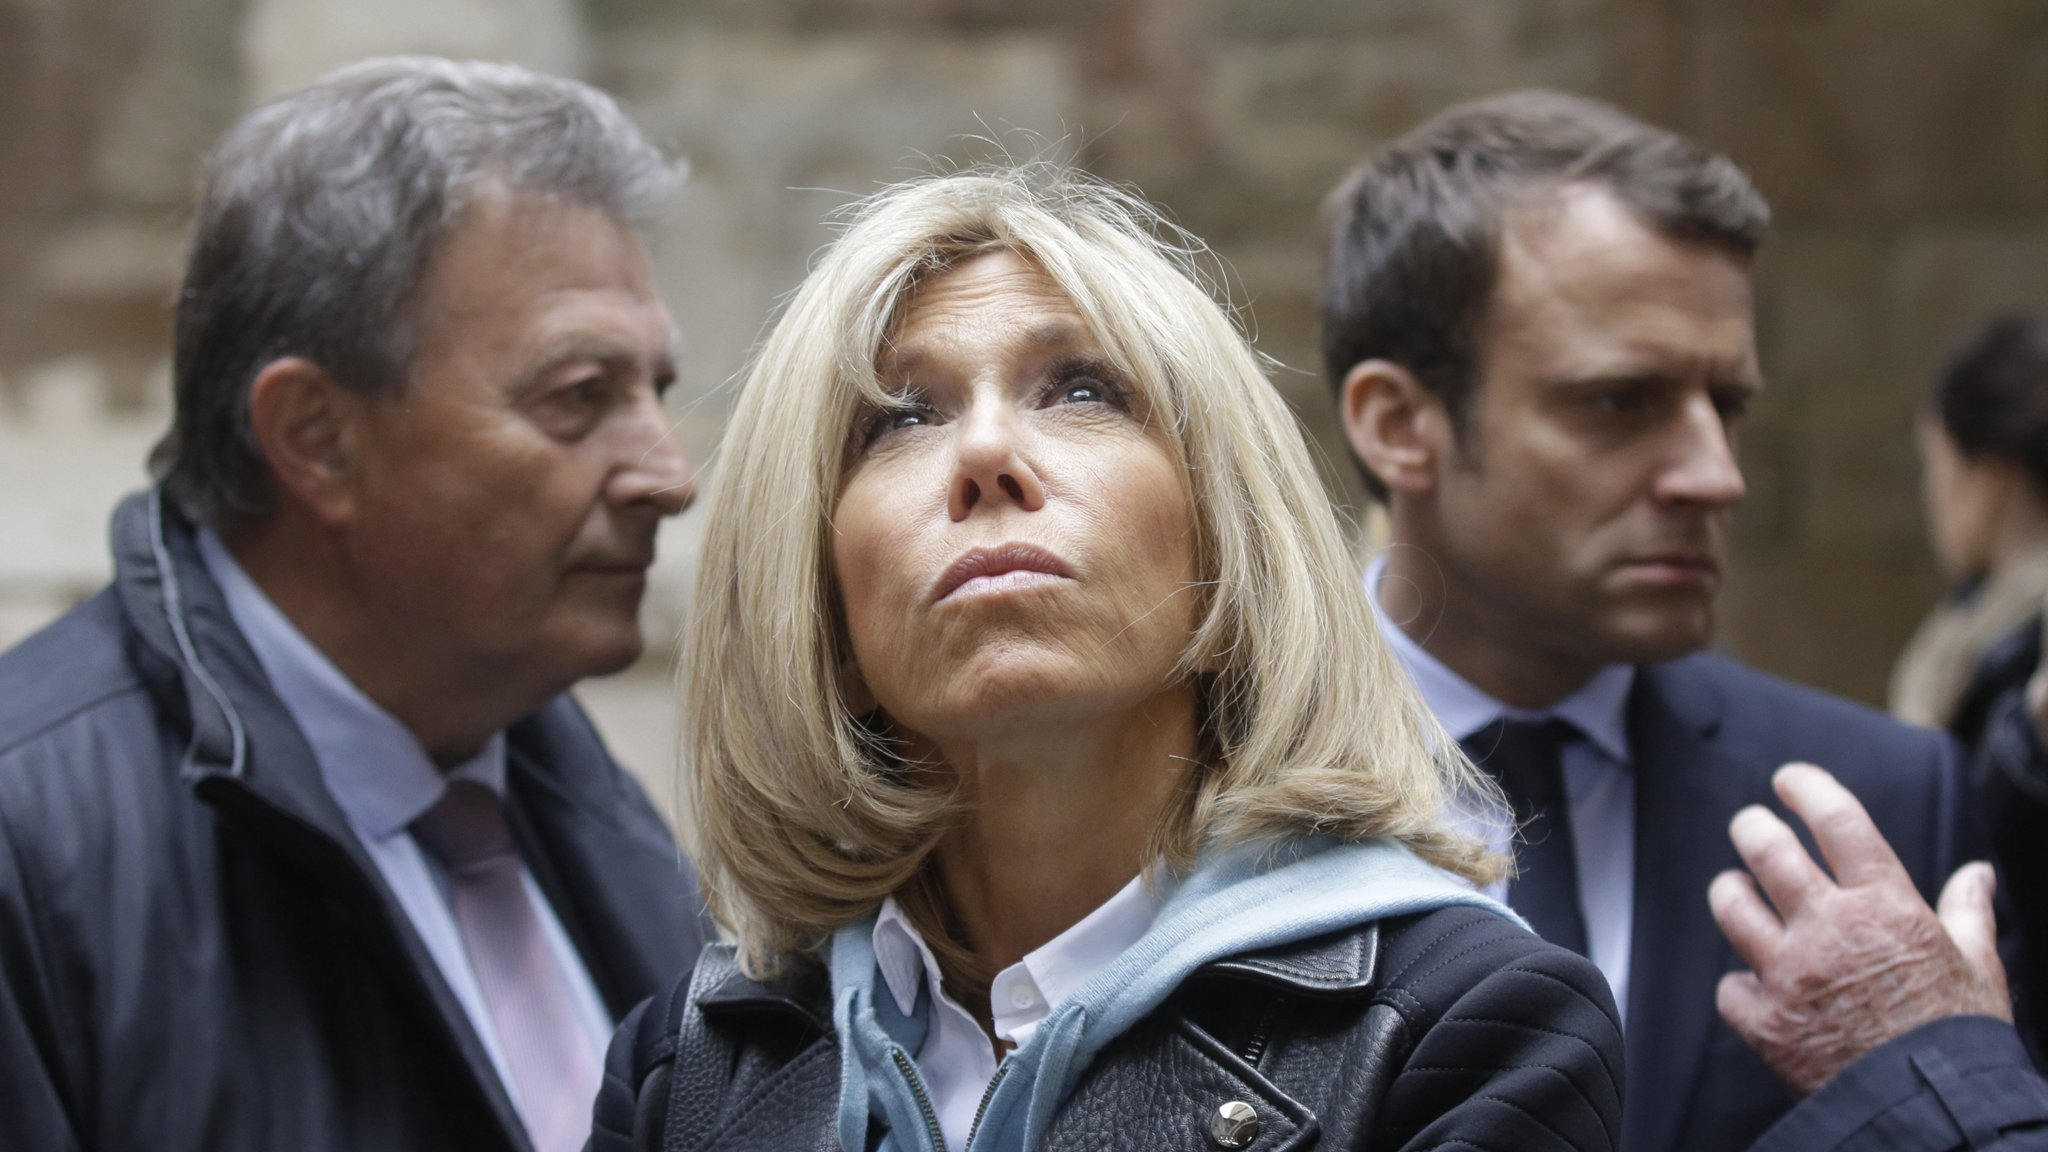 Macron S Wife Is The Power Behind His Campaign Financial Times